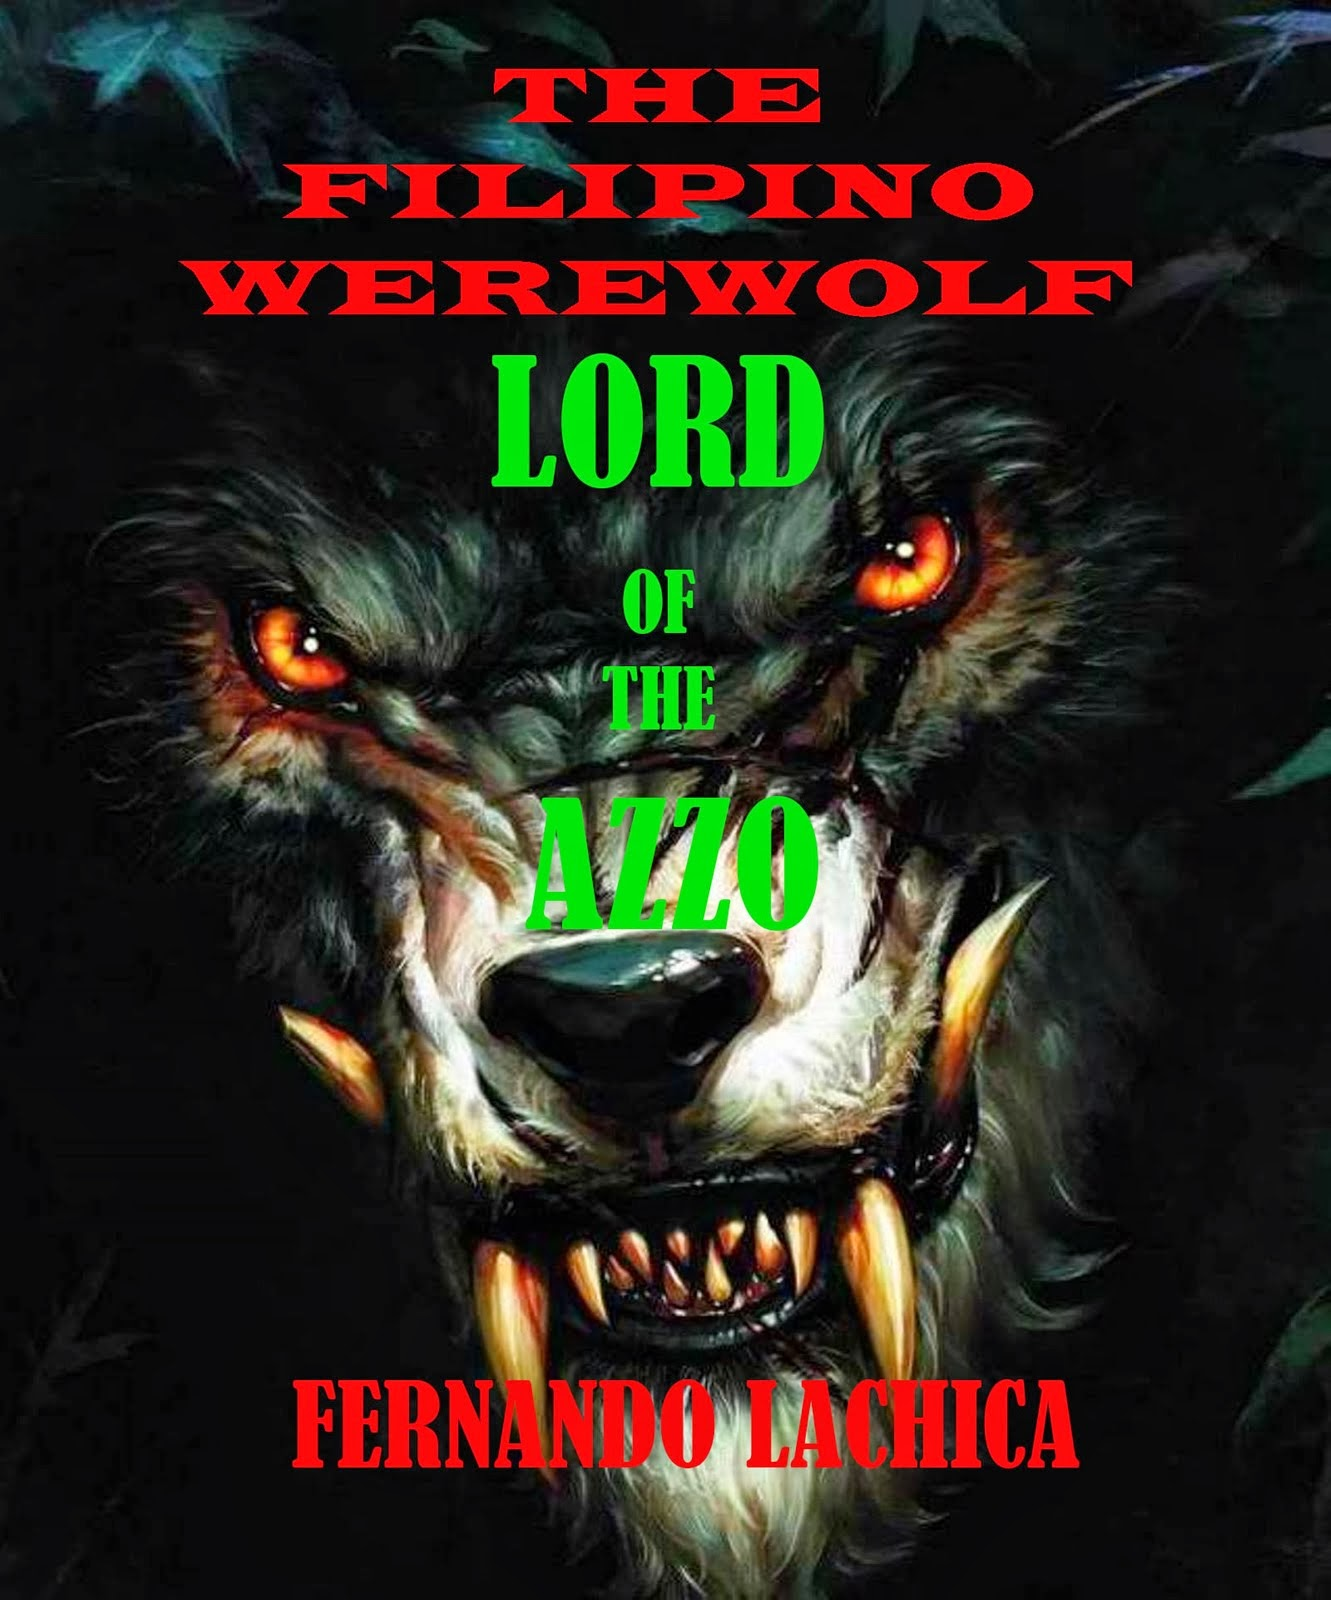 The Filipino Werewolf